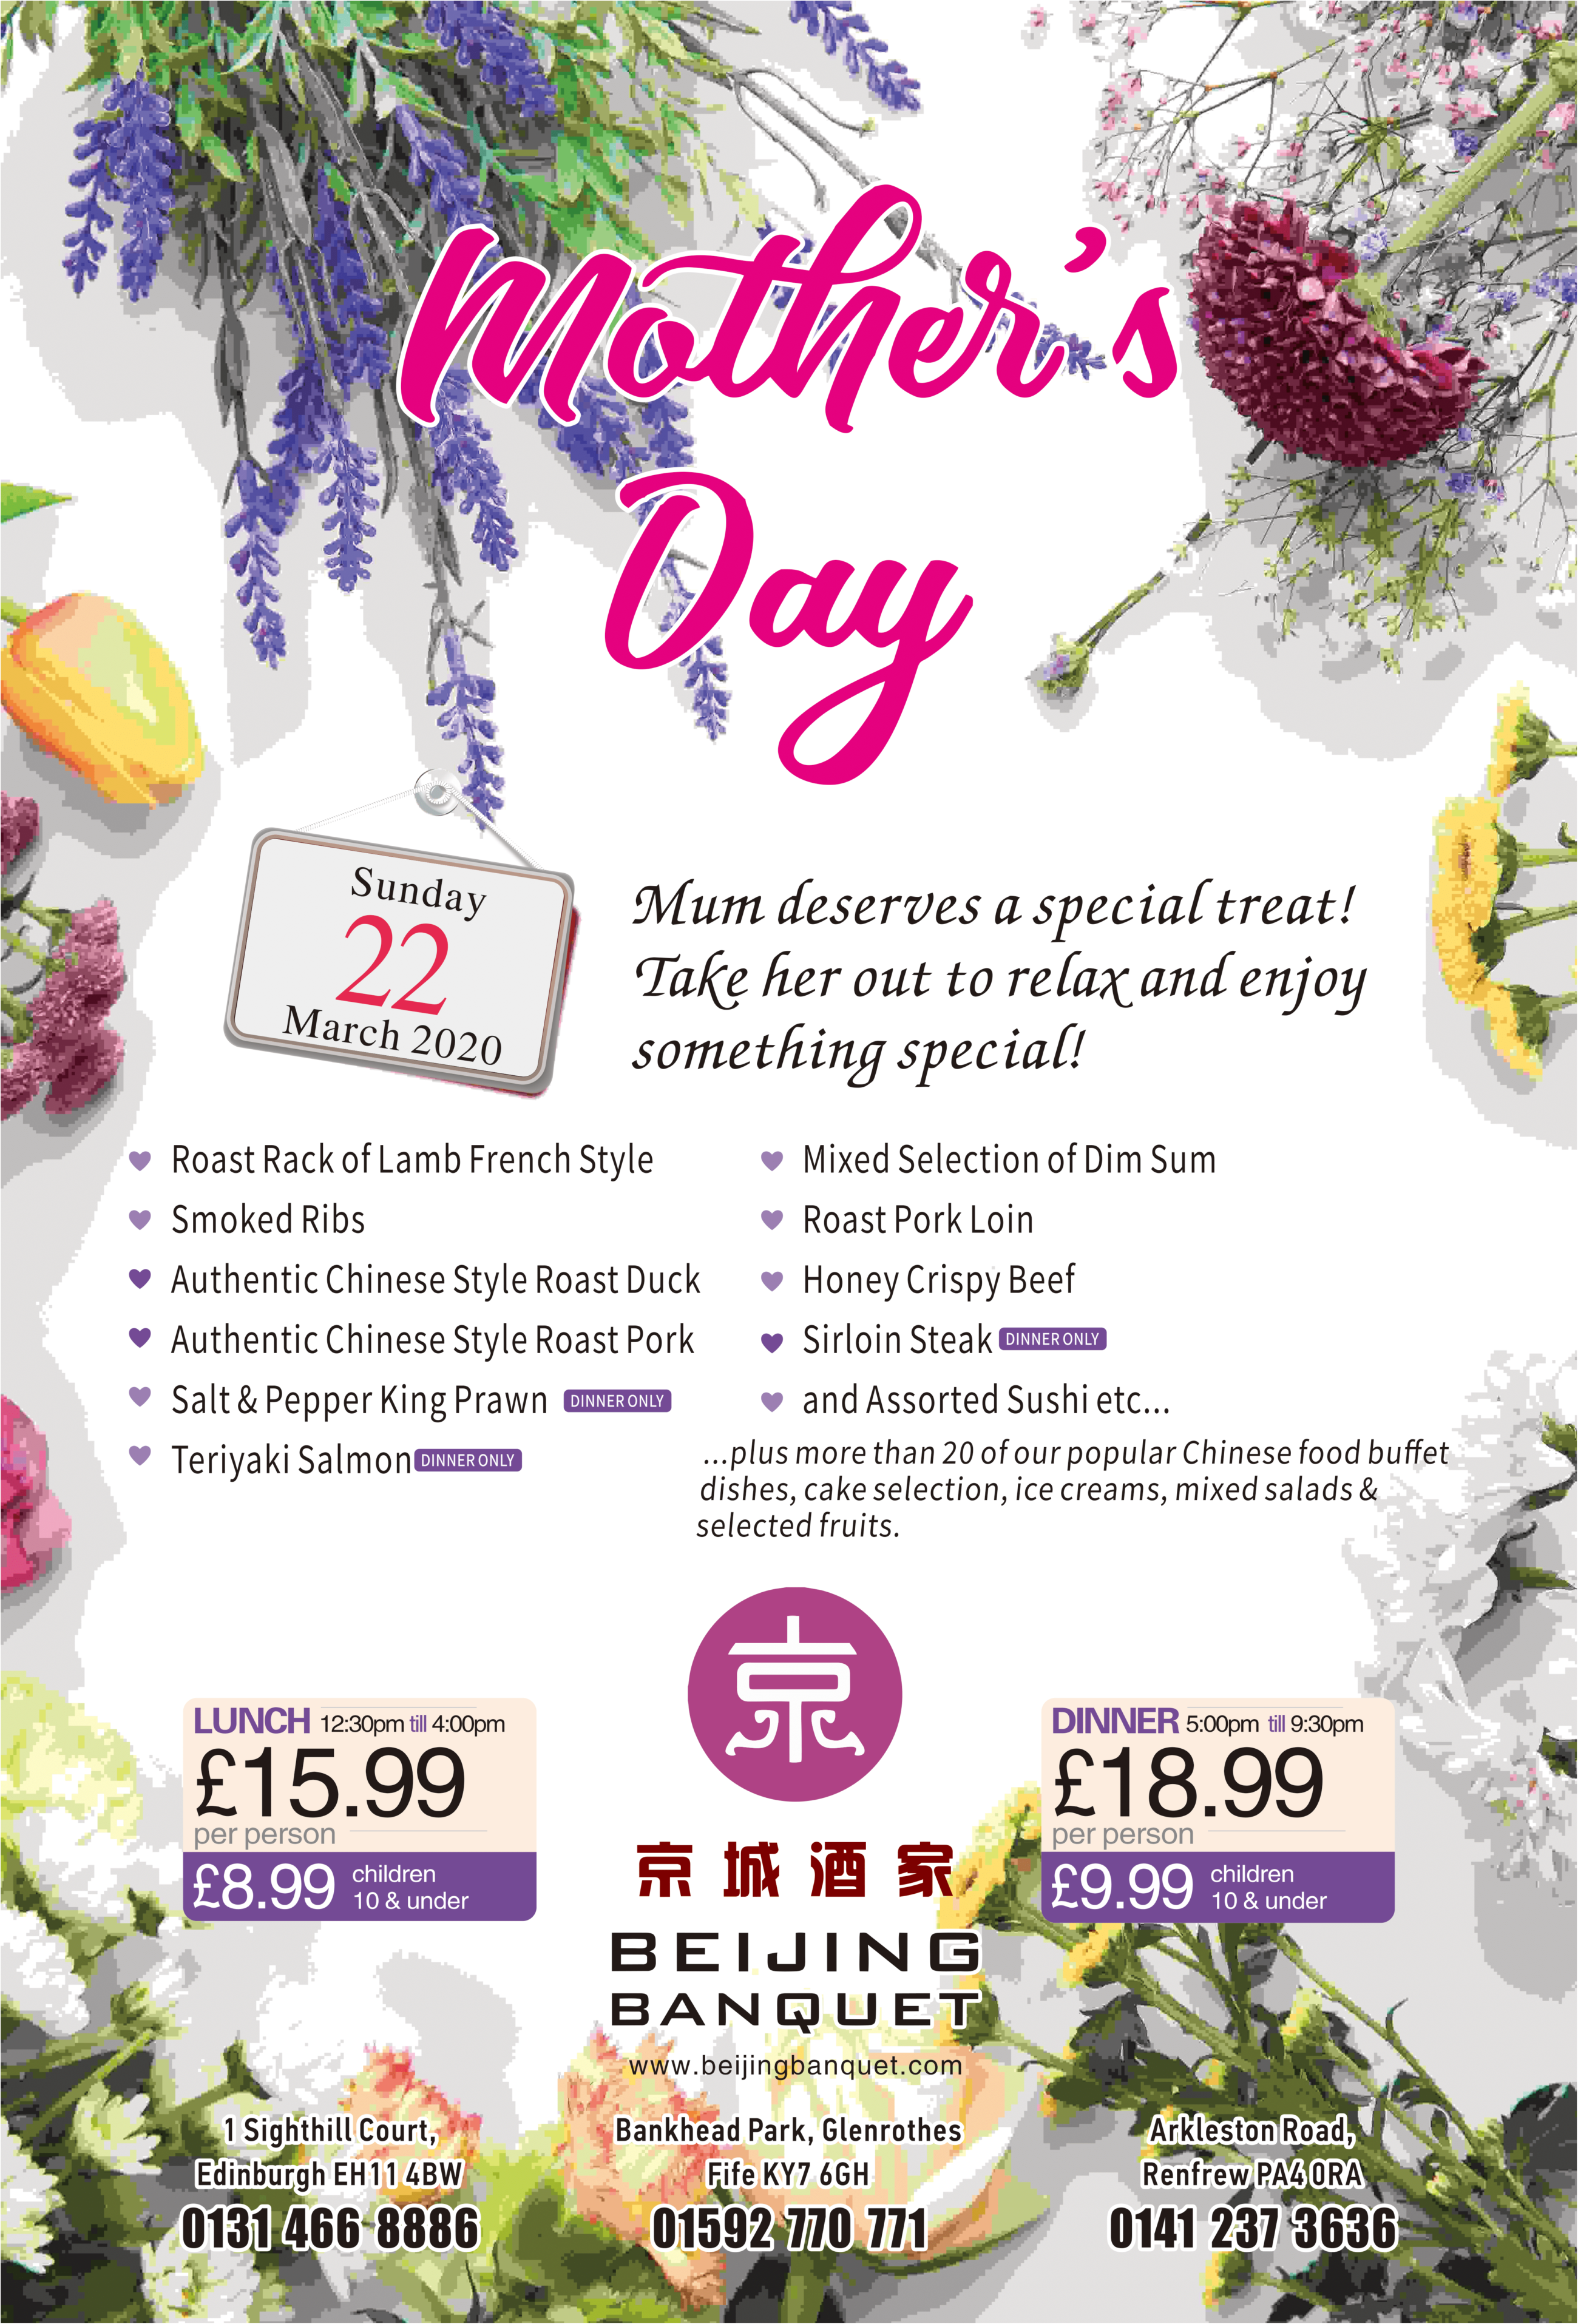 Book NOW for Mother's Day!